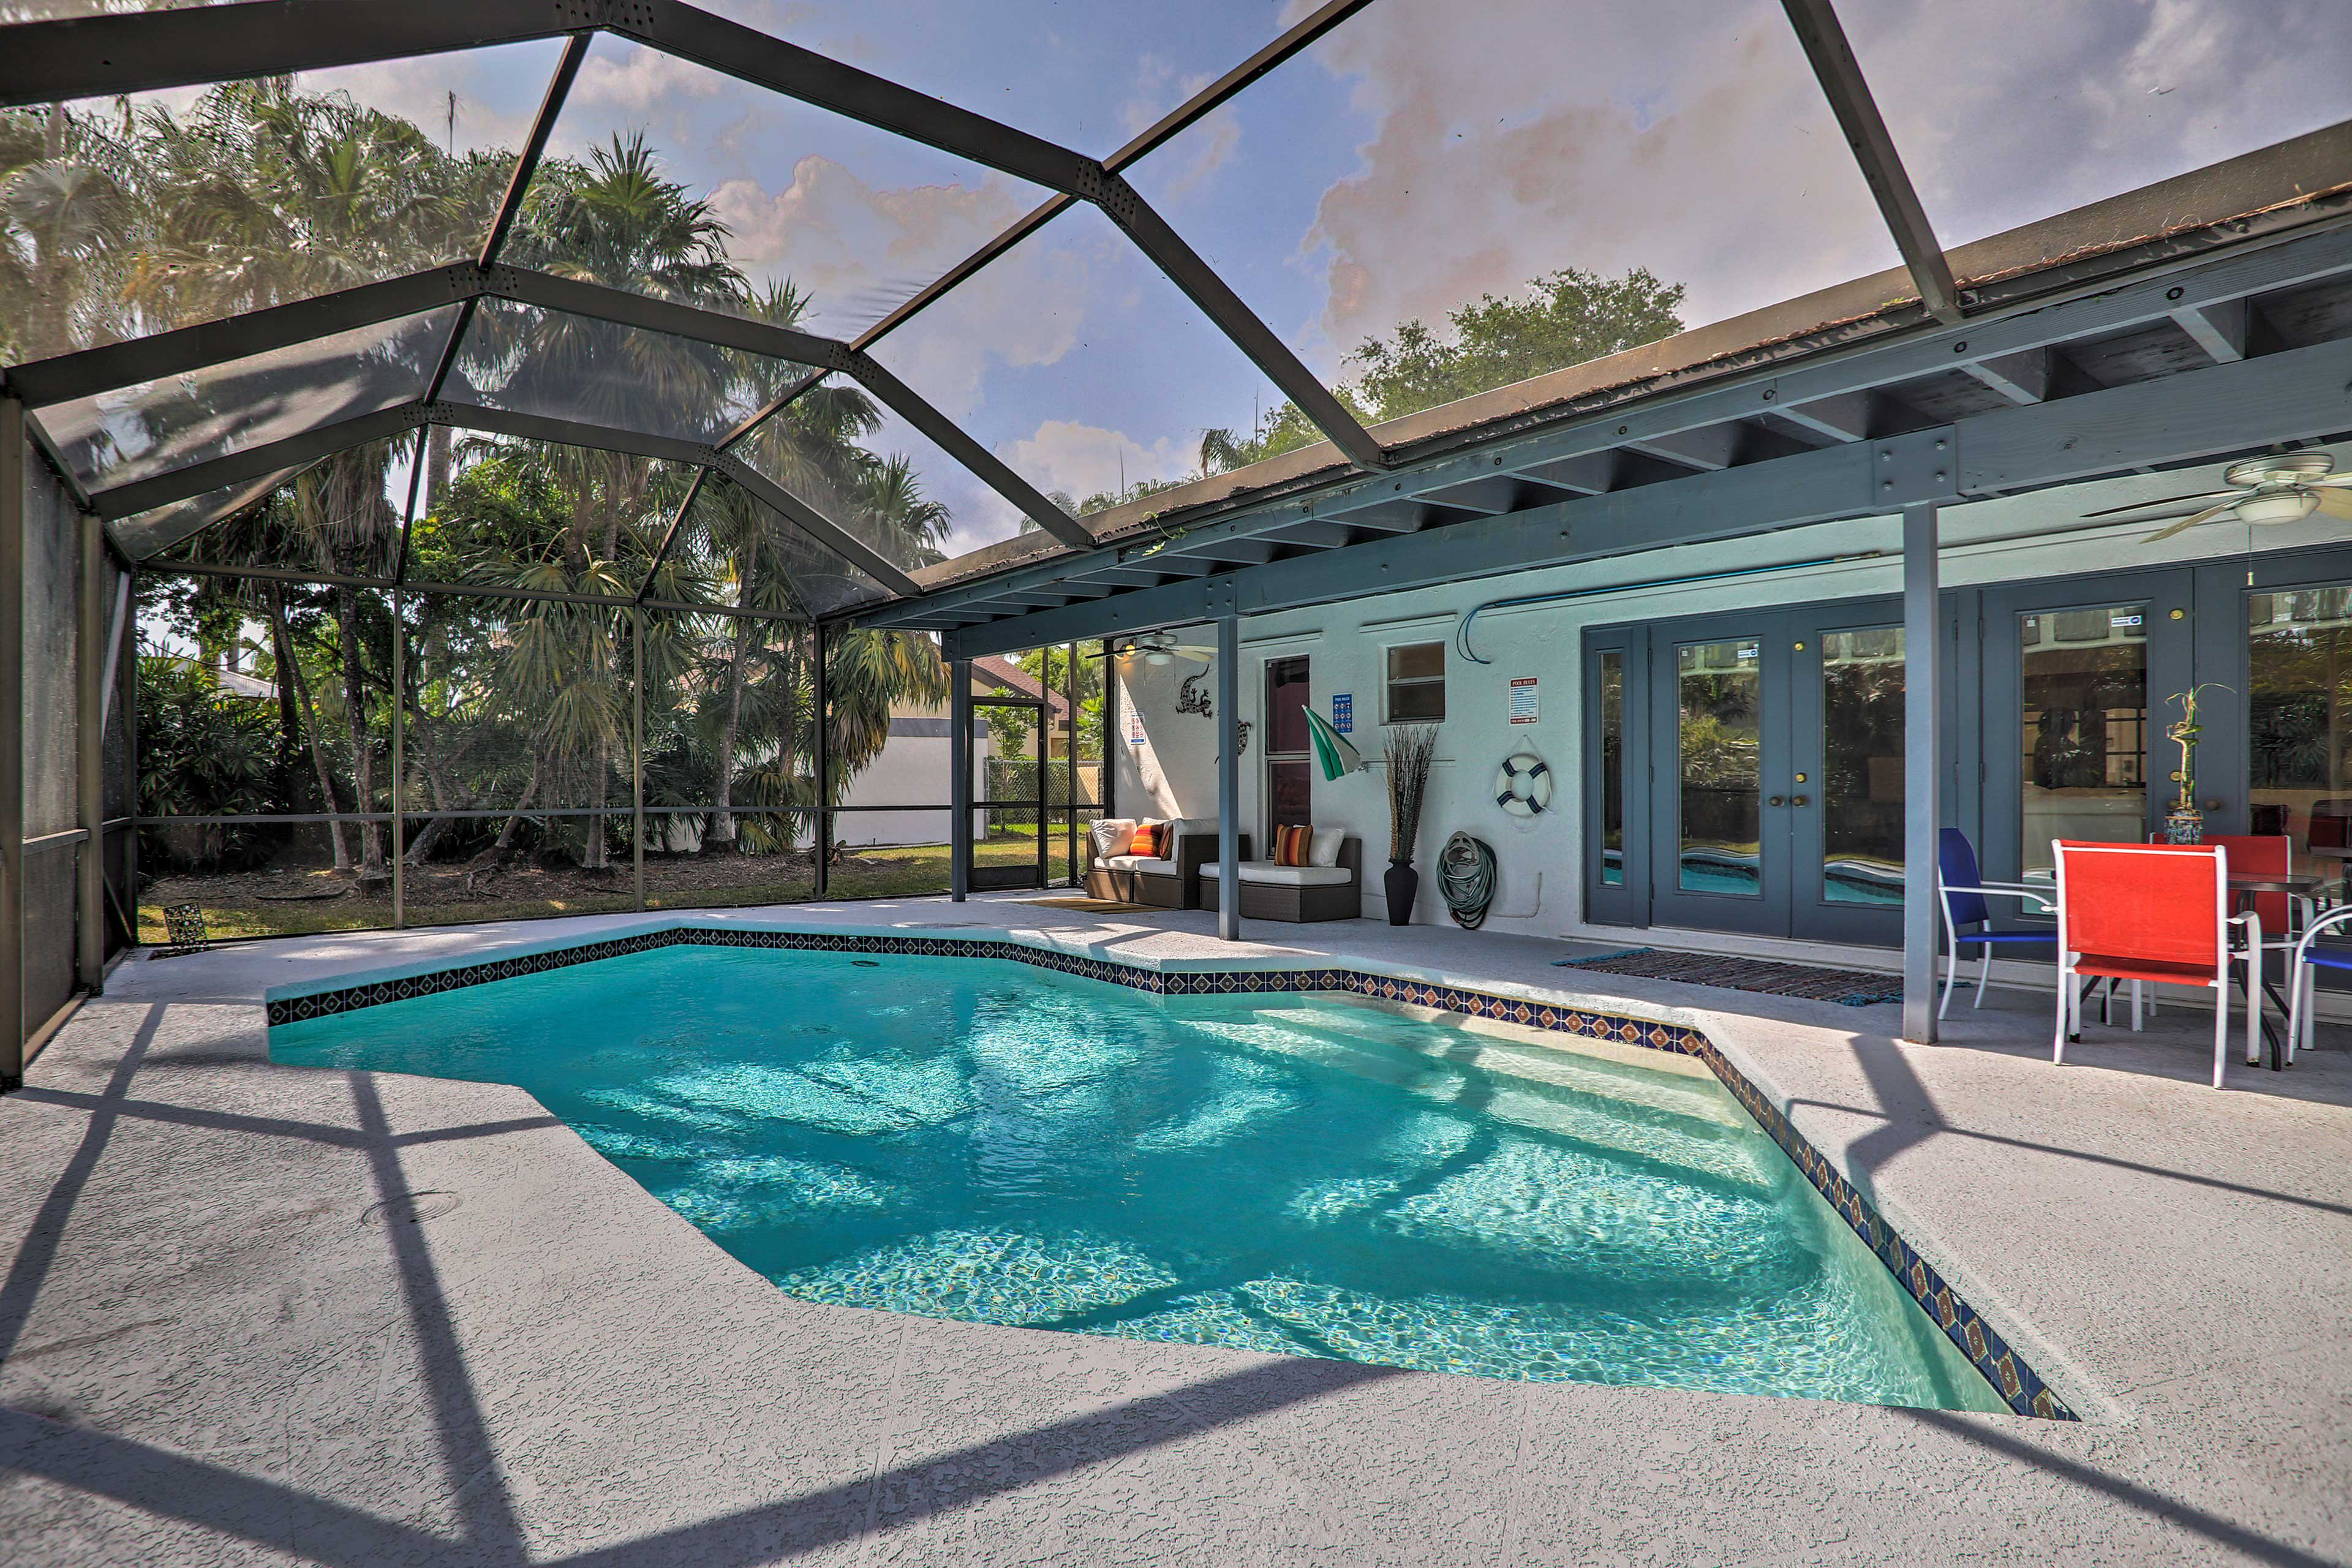 Enjoy Miami from the comfort of this 2-bedroom, 1-bathroom vacation rental home.